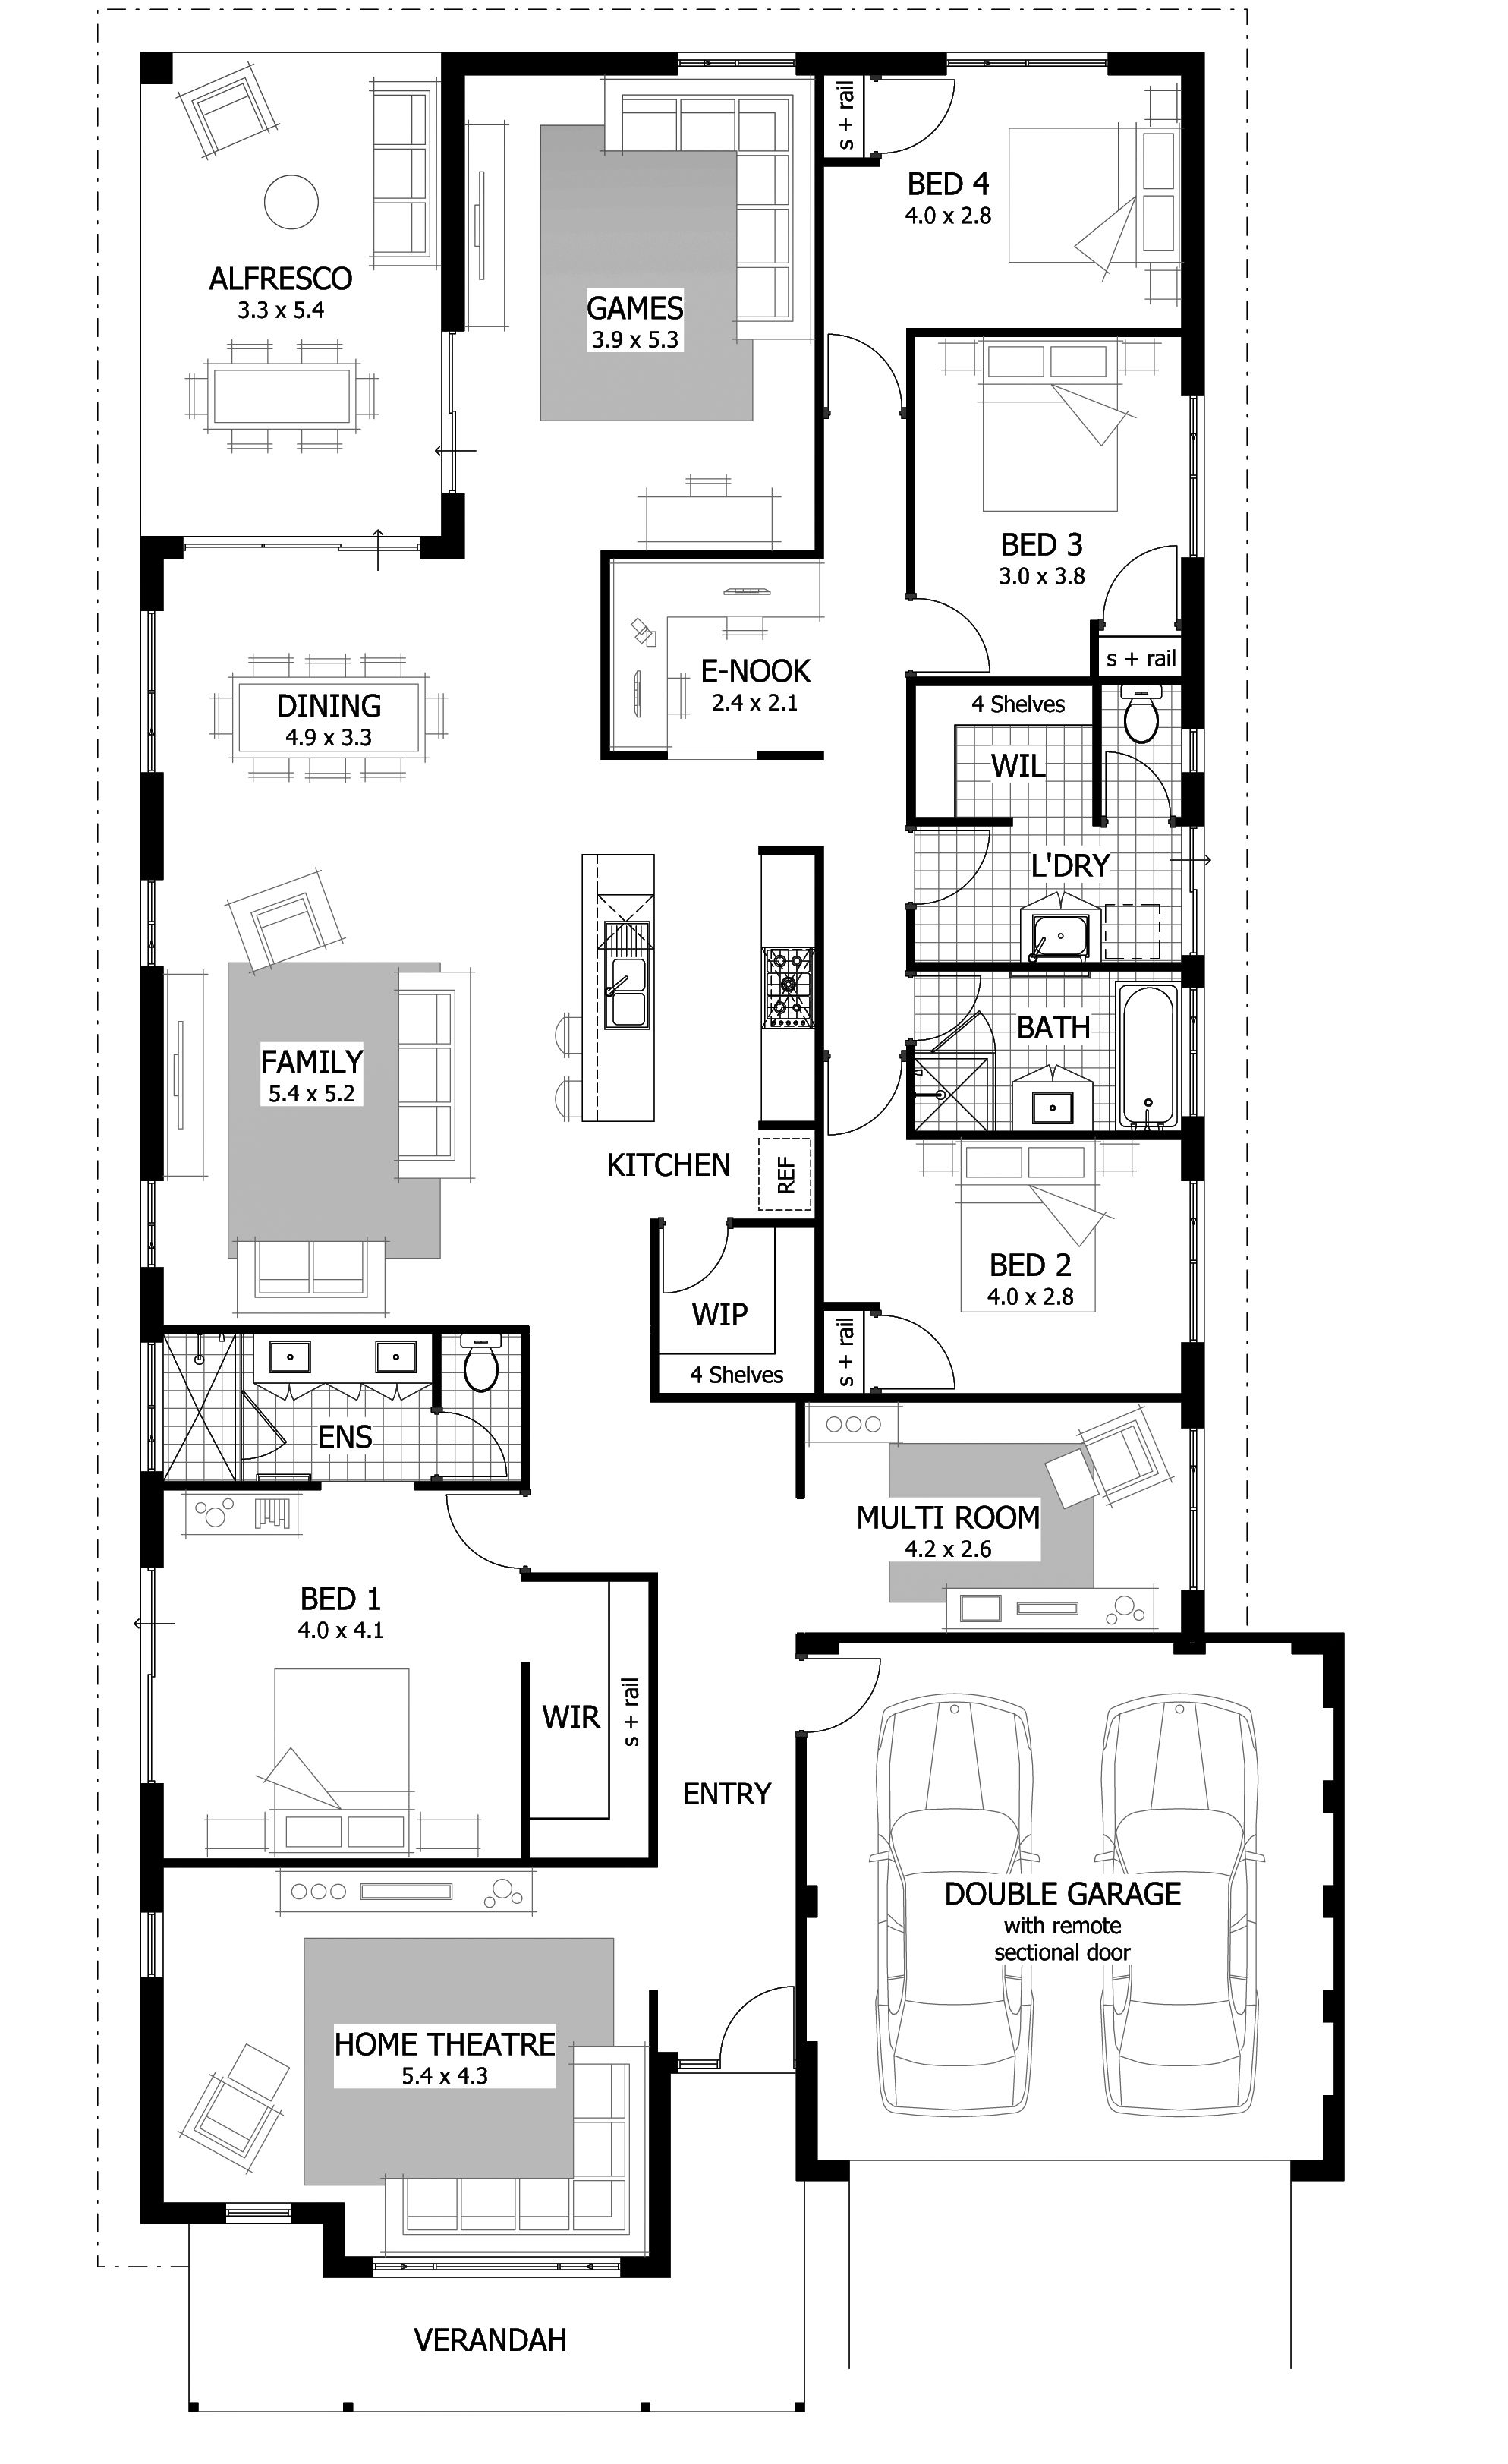 bedroom floor house plan bath story plans basement ranch house brick ranch house plan bedroom ranch house plan full basement best free home design - Home Floor Plan Designs